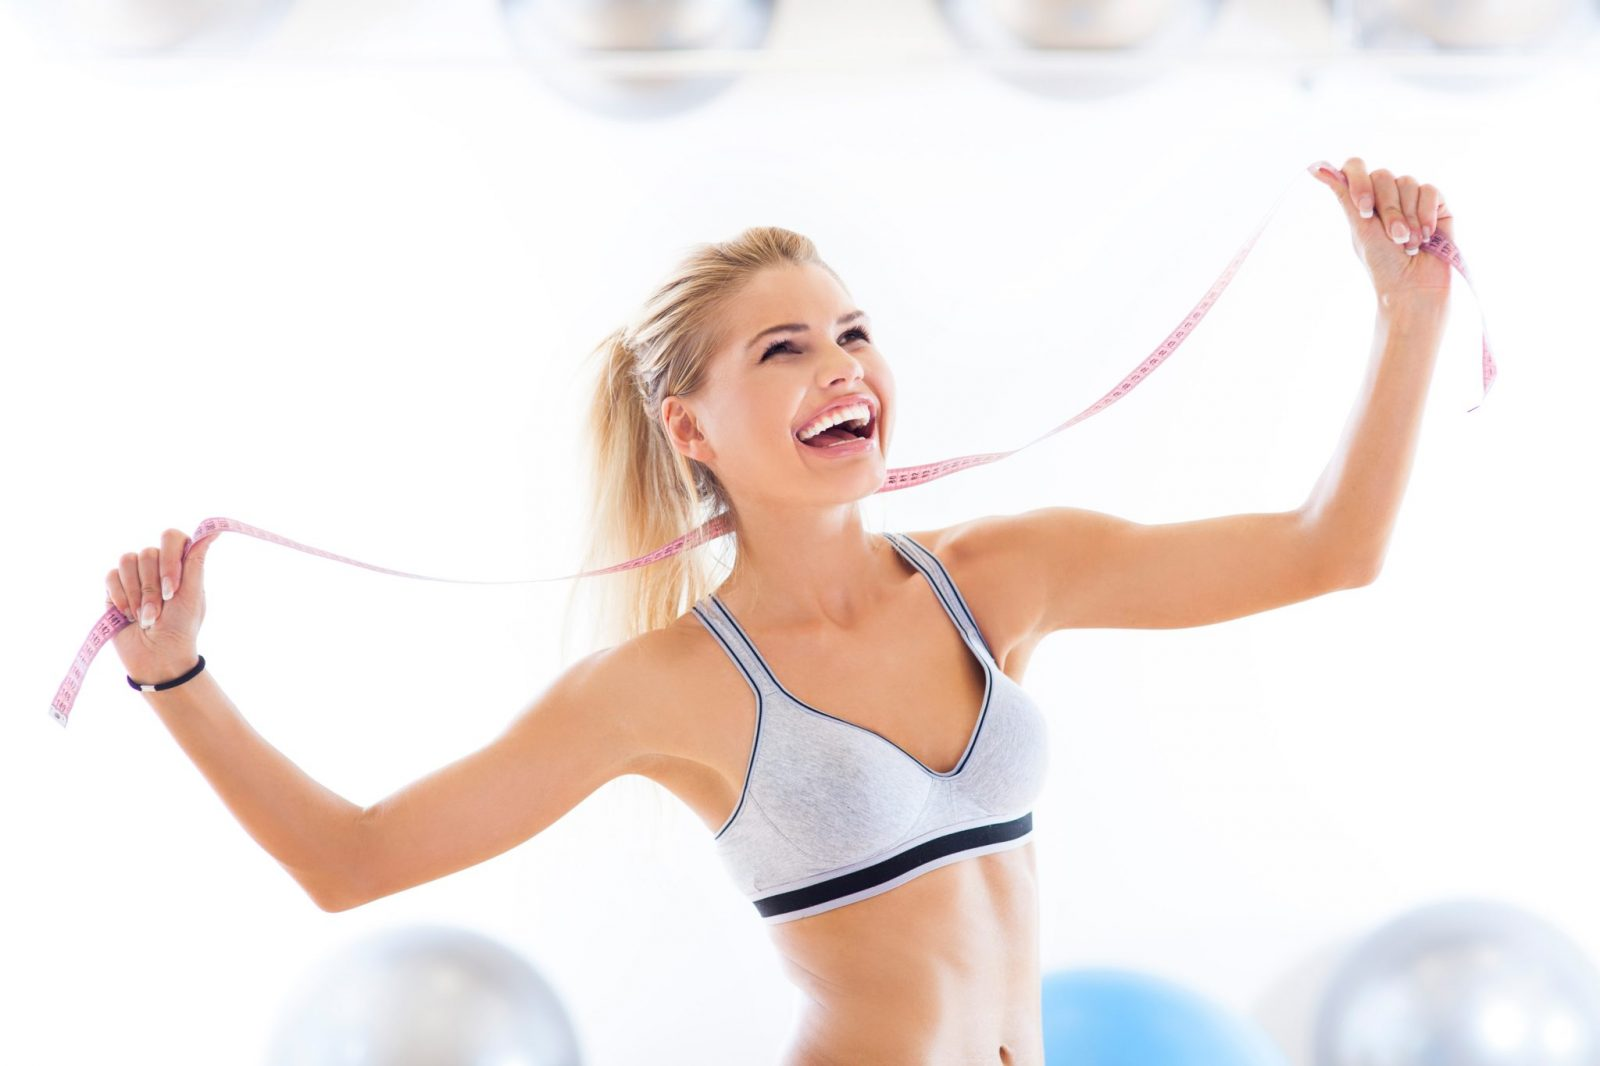 happy woman who lost weight holding a tape measure with exercise balls in the background